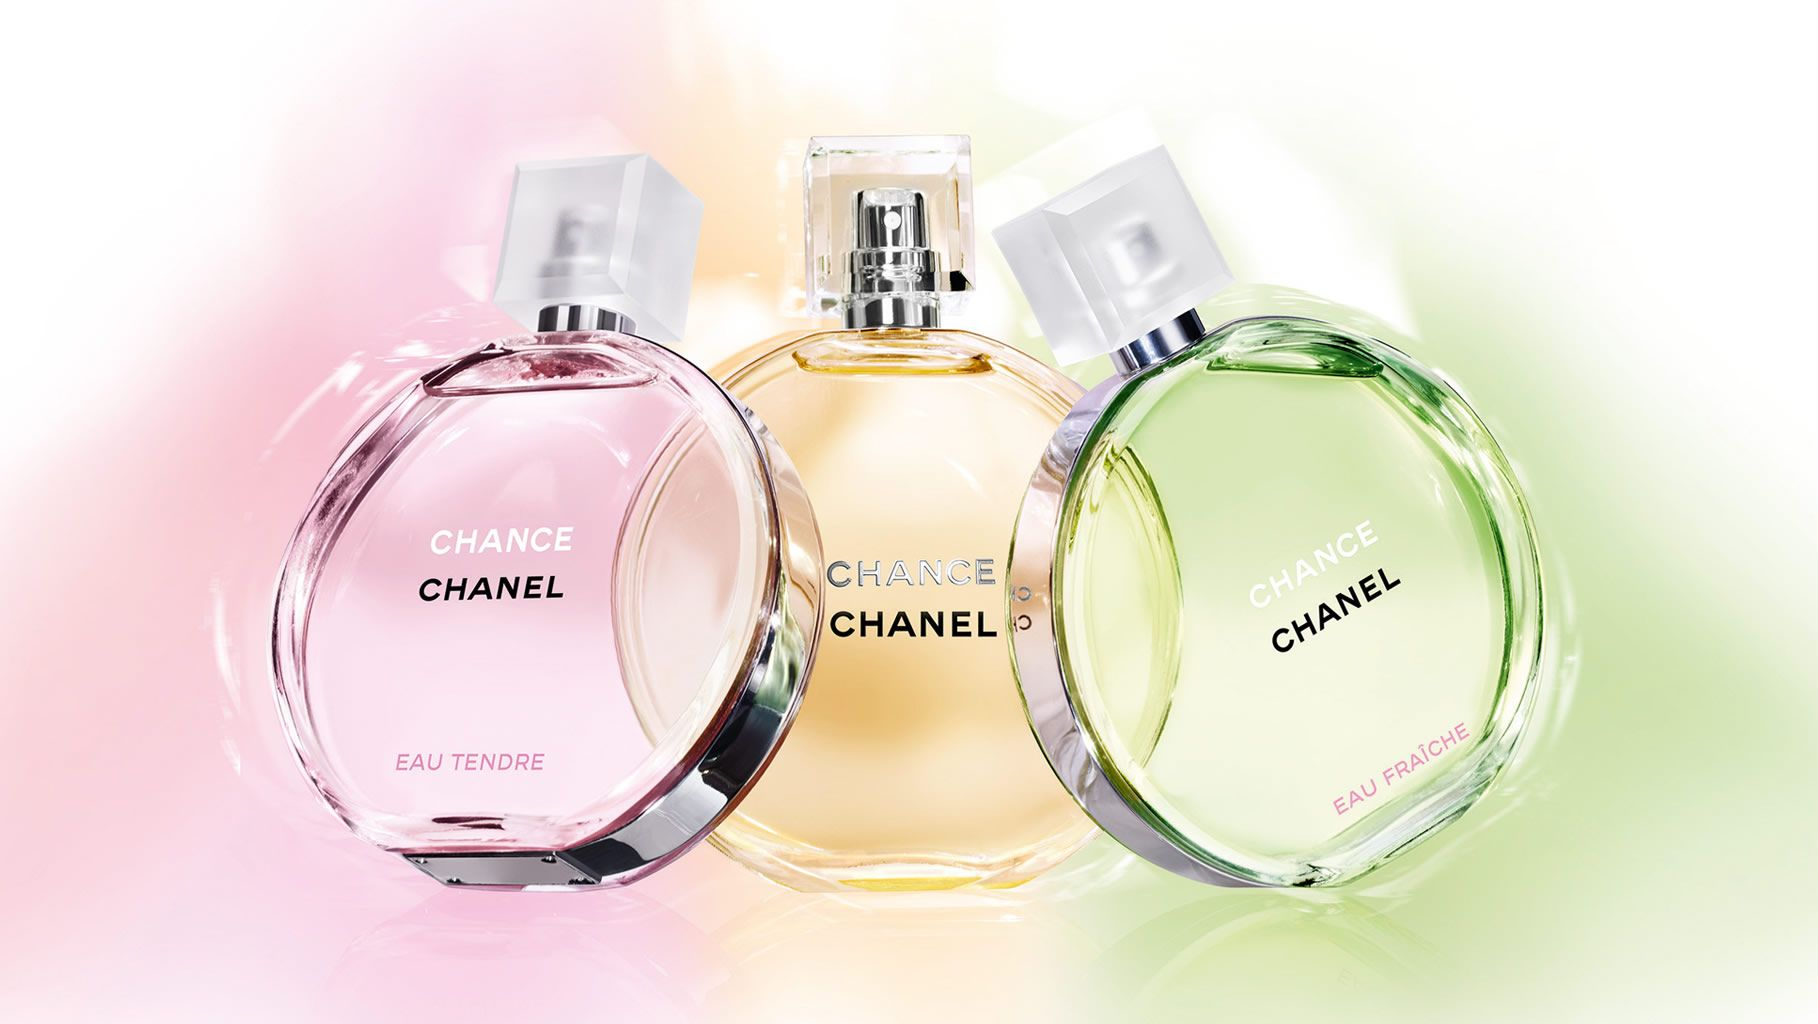 abddee22 Pin by Christine Justice on good smelling | Chanel perfume ...